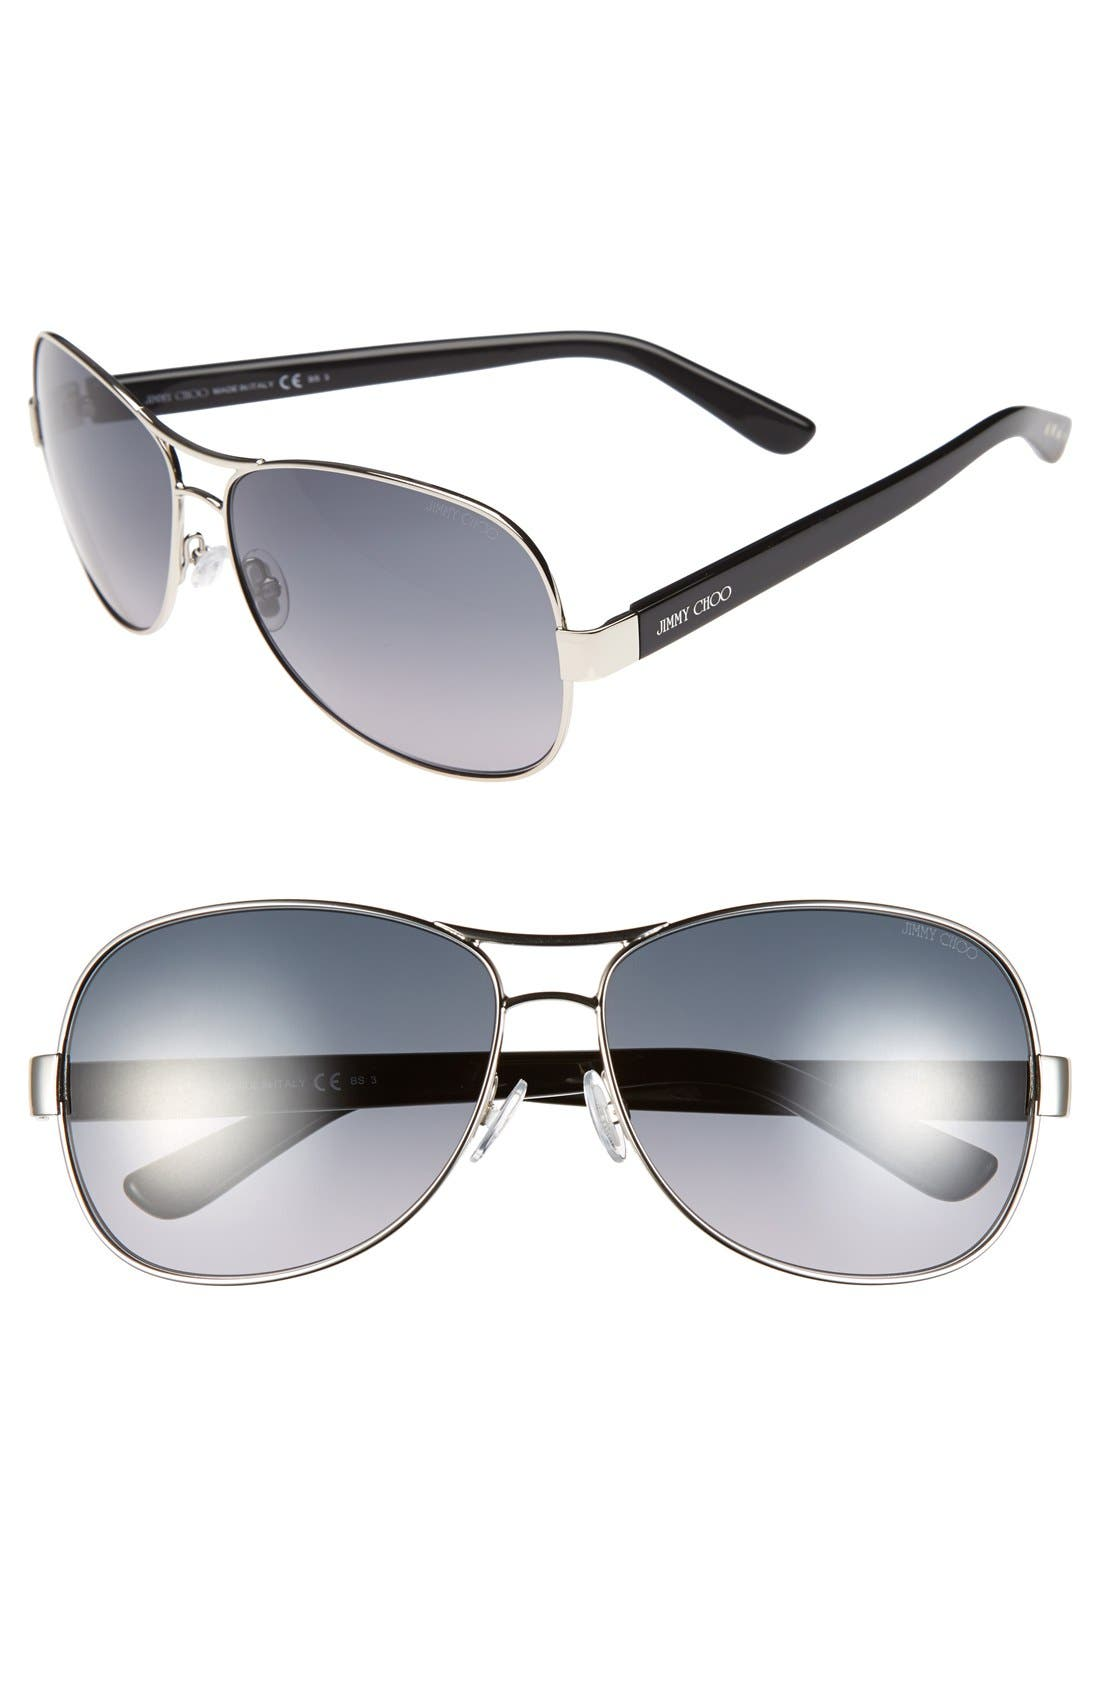 Alternate Image 1 Selected - Jimmy Choo 'Bexs' 60mm Sunglasses (Online Only)